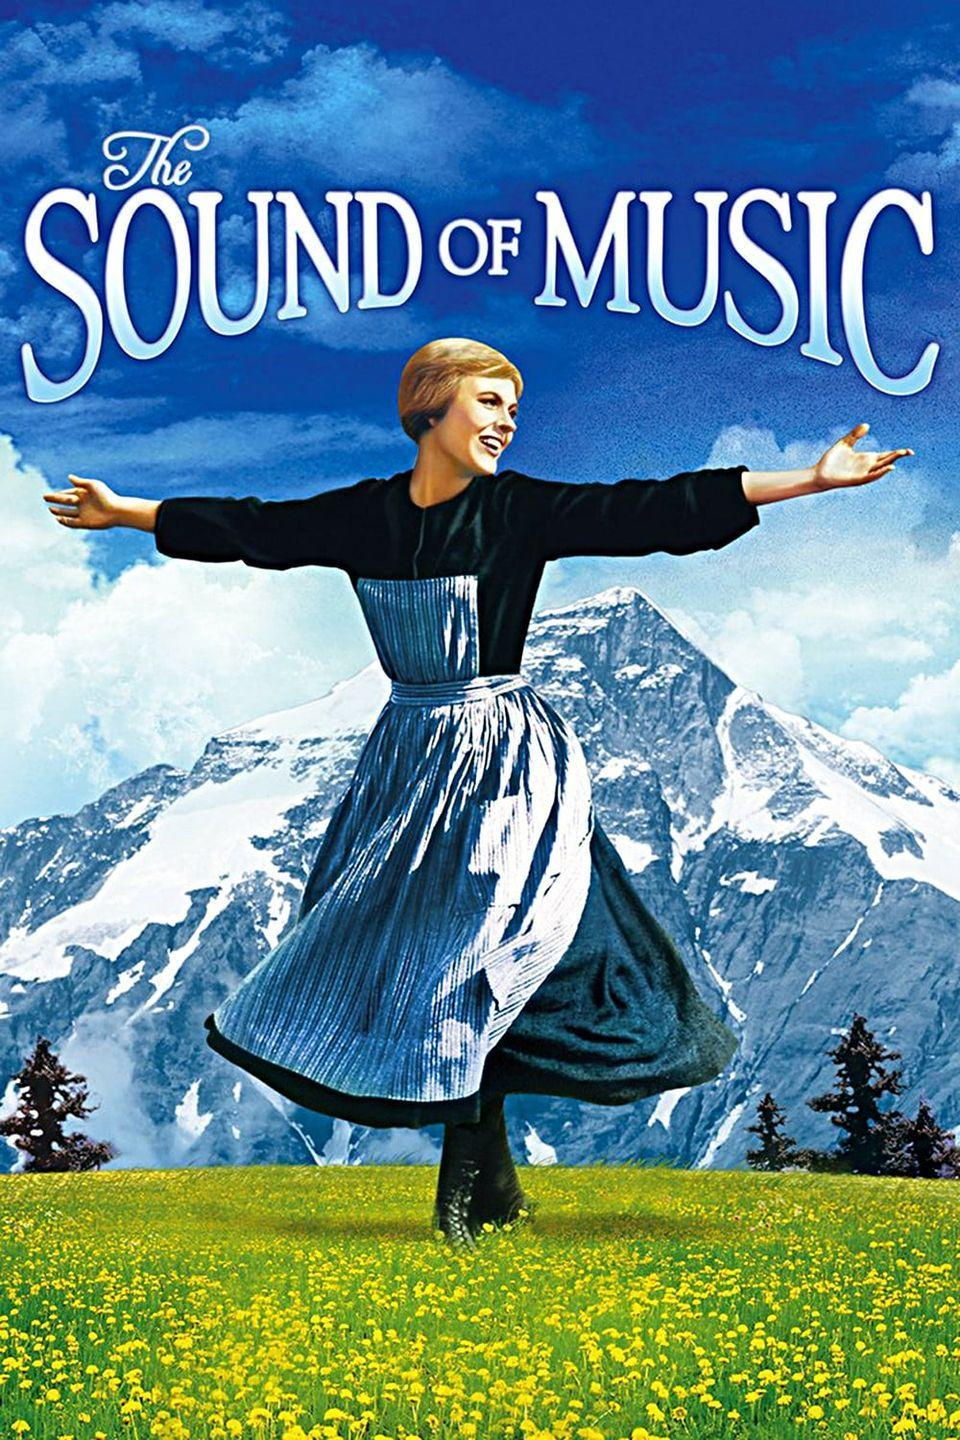 "<p>Julie Andrews as Maria running through the meadow singing ""The Hills are Alive"" is just one of those movie scenes that will forever be in the pop culture zeitgeist. This movie about a nun who takes a job as governess for the children of a stern captain is a Best Picture winner and impossible not to sing along to.</p><p><a class=""link rapid-noclick-resp"" href=""https://www.amazon.com/Sound-Music-Julie-Andrews/dp/B009EELBIS/ref=sr_1_1?tag=syn-yahoo-20&ascsubtag=%5Bartid%7C10063.g.34344525%5Bsrc%7Cyahoo-us"" rel=""nofollow noopener"" target=""_blank"" data-ylk=""slk:WATCH NOW"">WATCH NOW</a></p>"